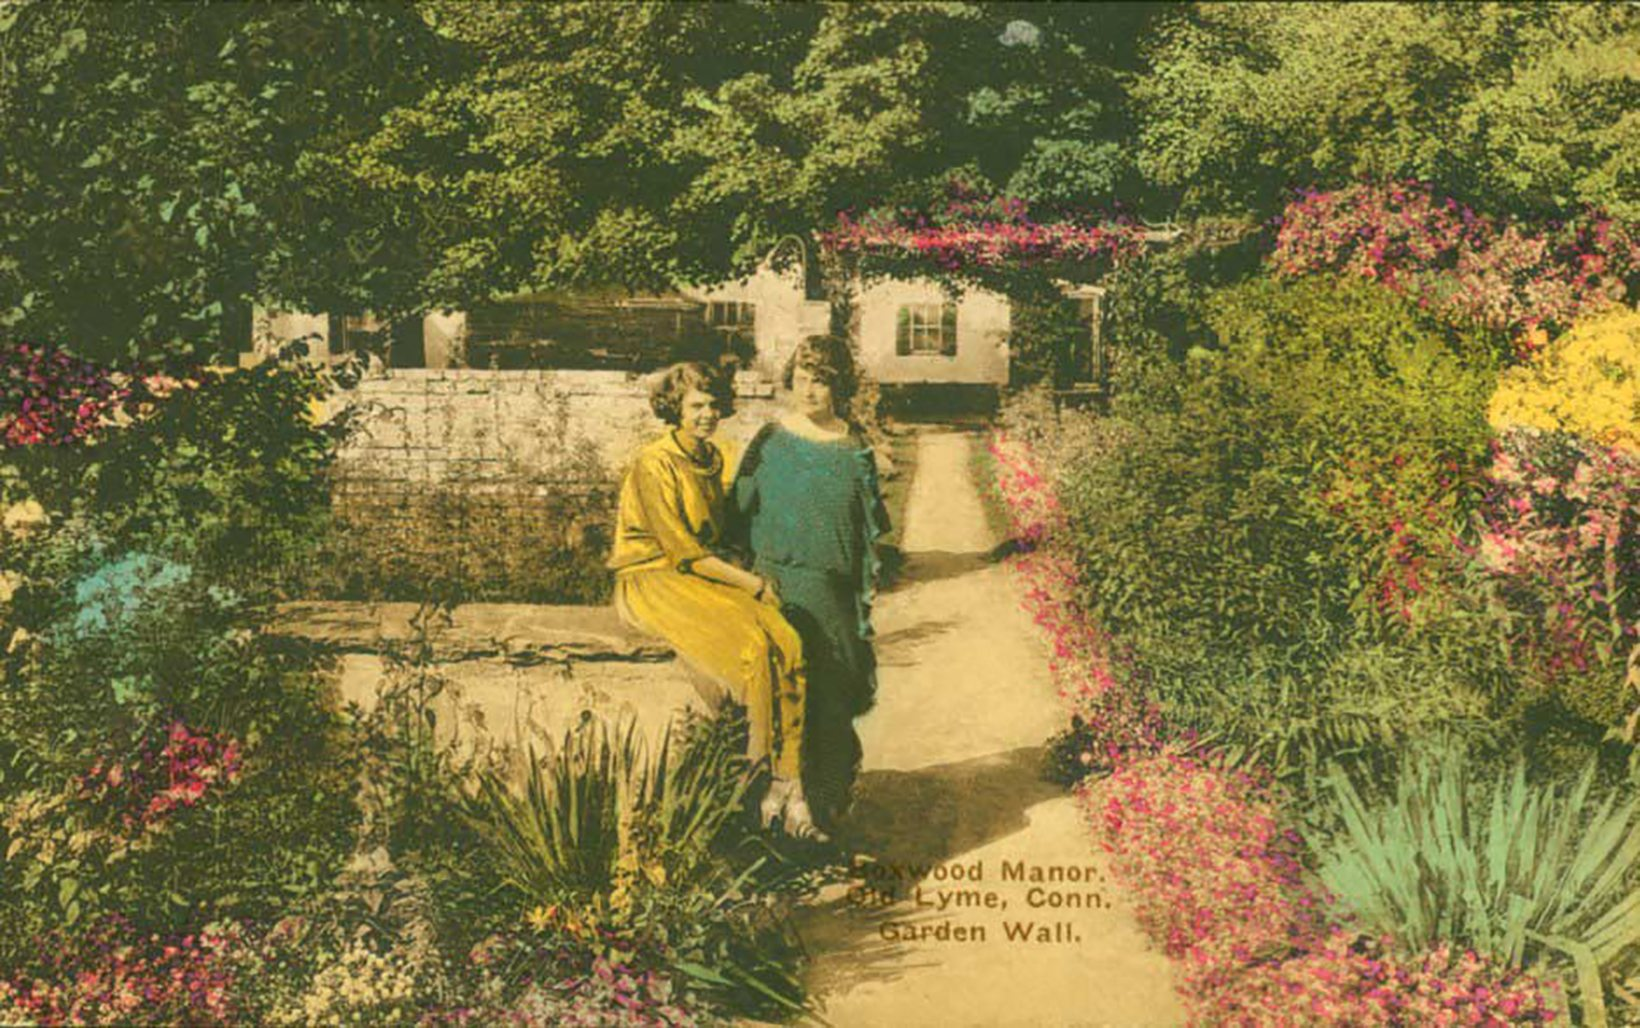 Landmarks: Painted Gardens, Part 1- Boxwood Manor